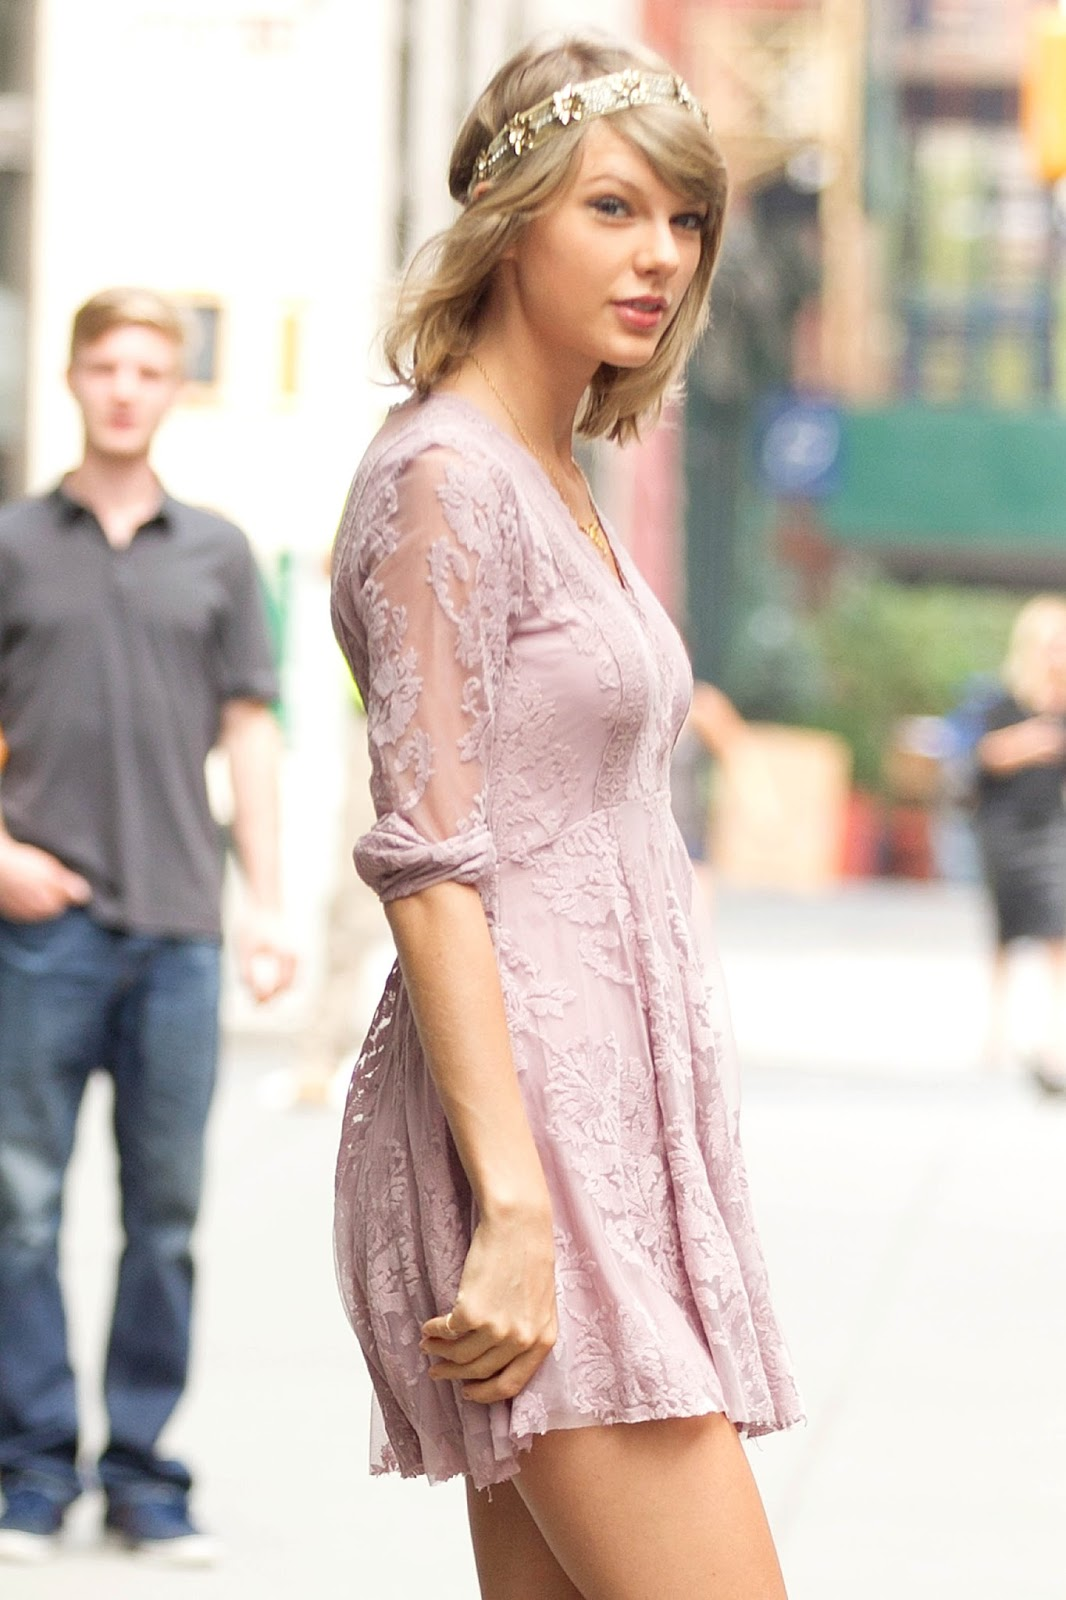 Taylor Swift shows long legs in a Free People dress in NY